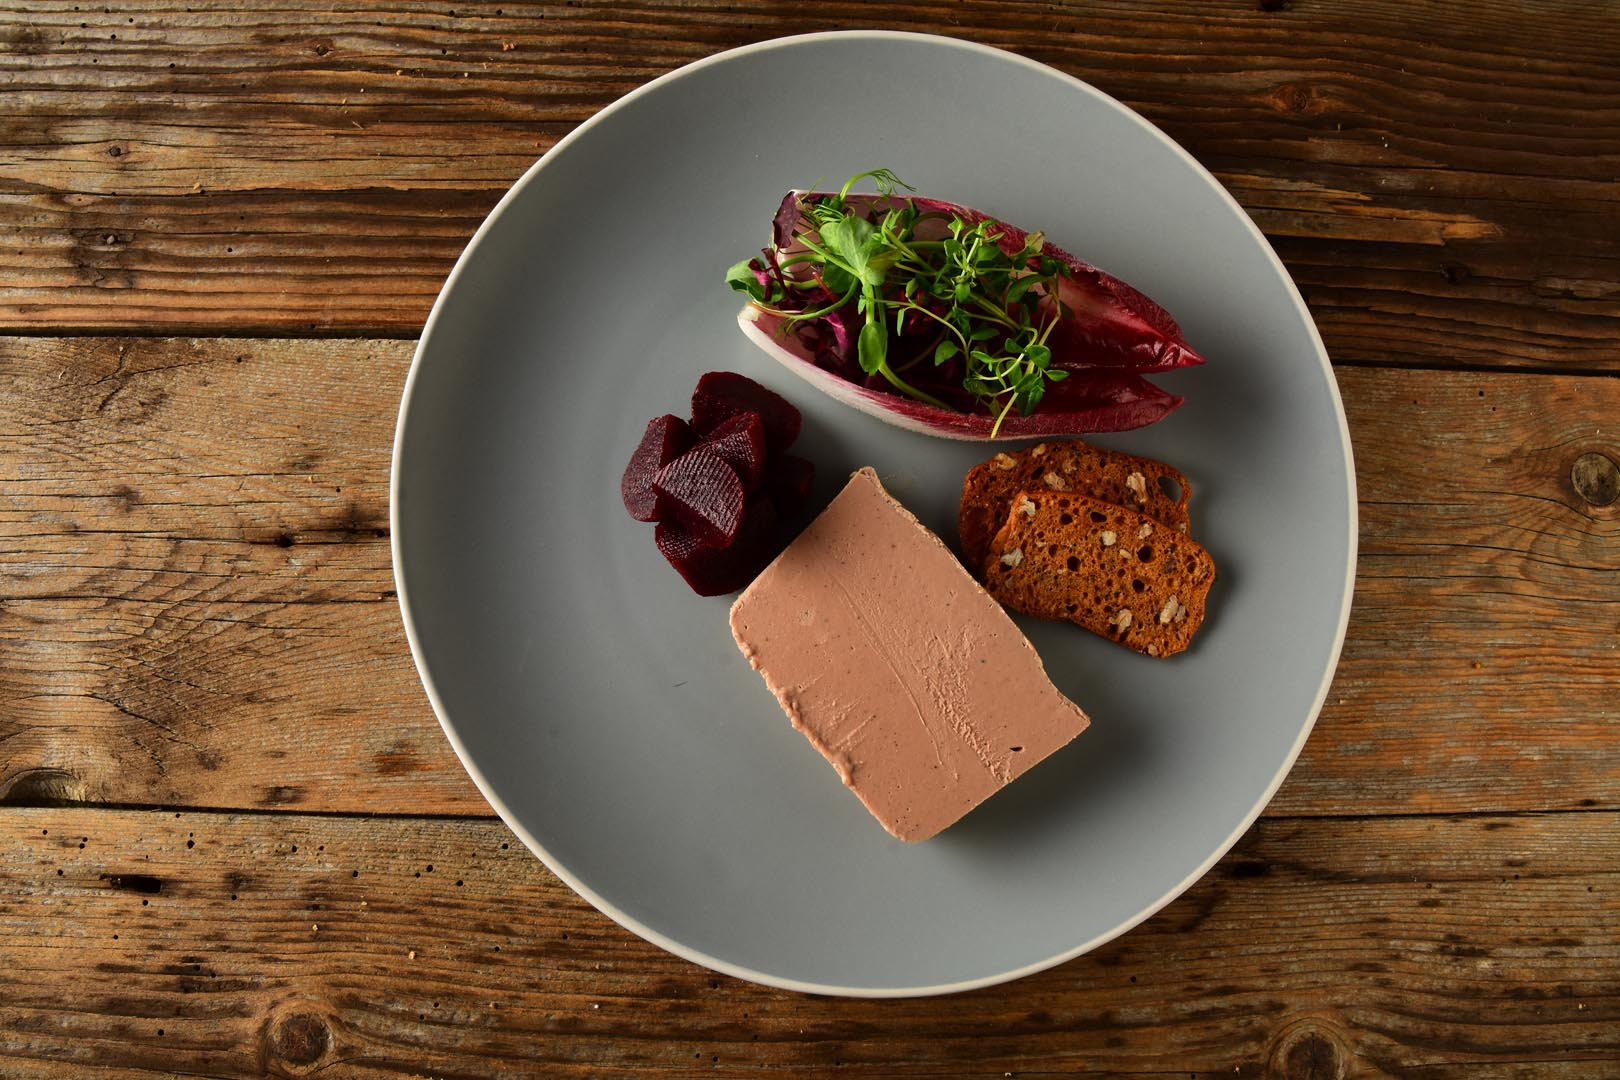 pate plated